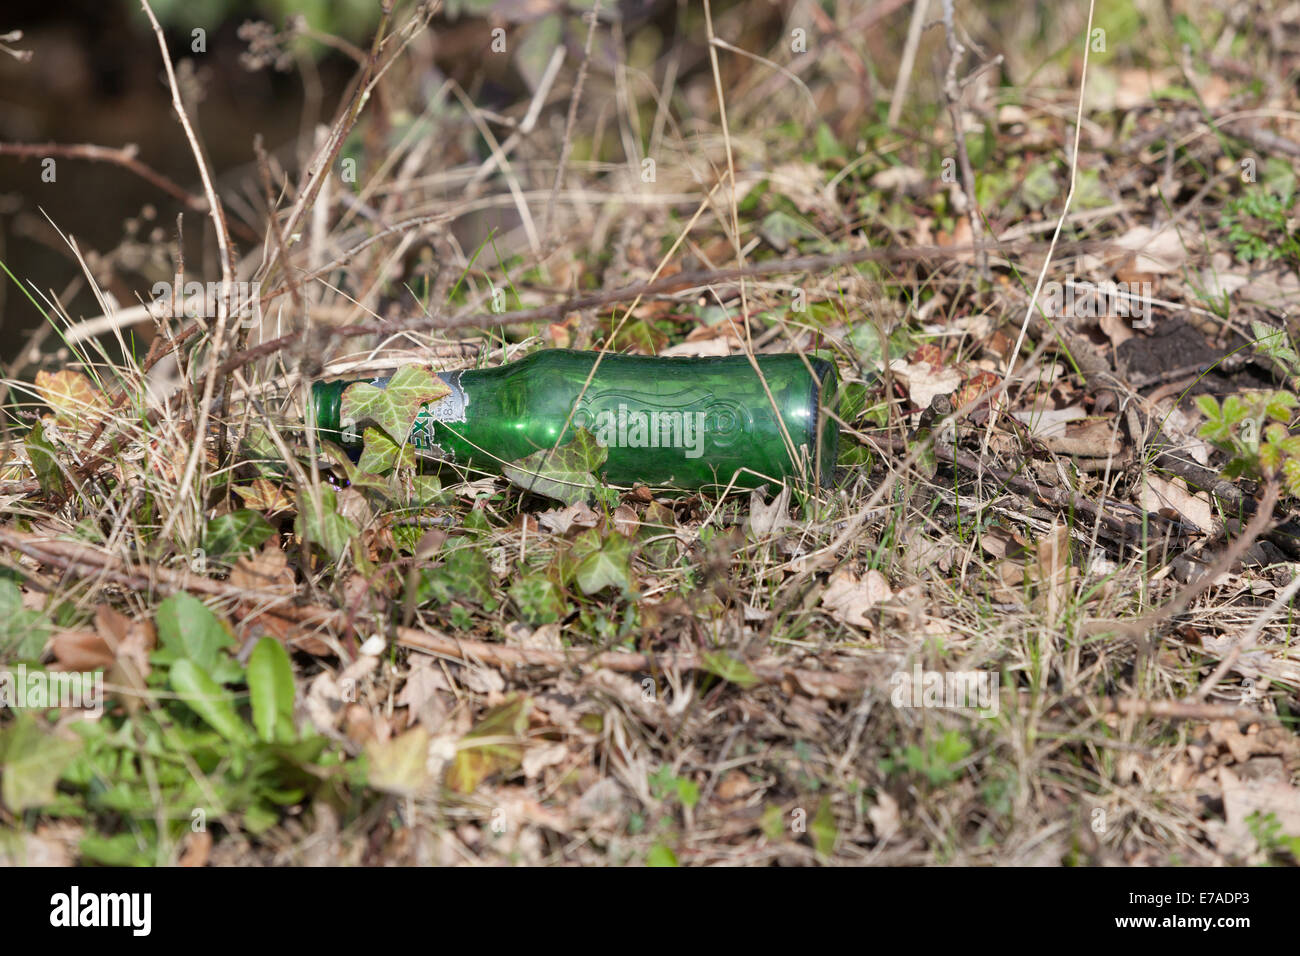 A discarded glass beer bottle littering the countryside.A possible fire risk in the dry grass if sun is magnified - Stock Image